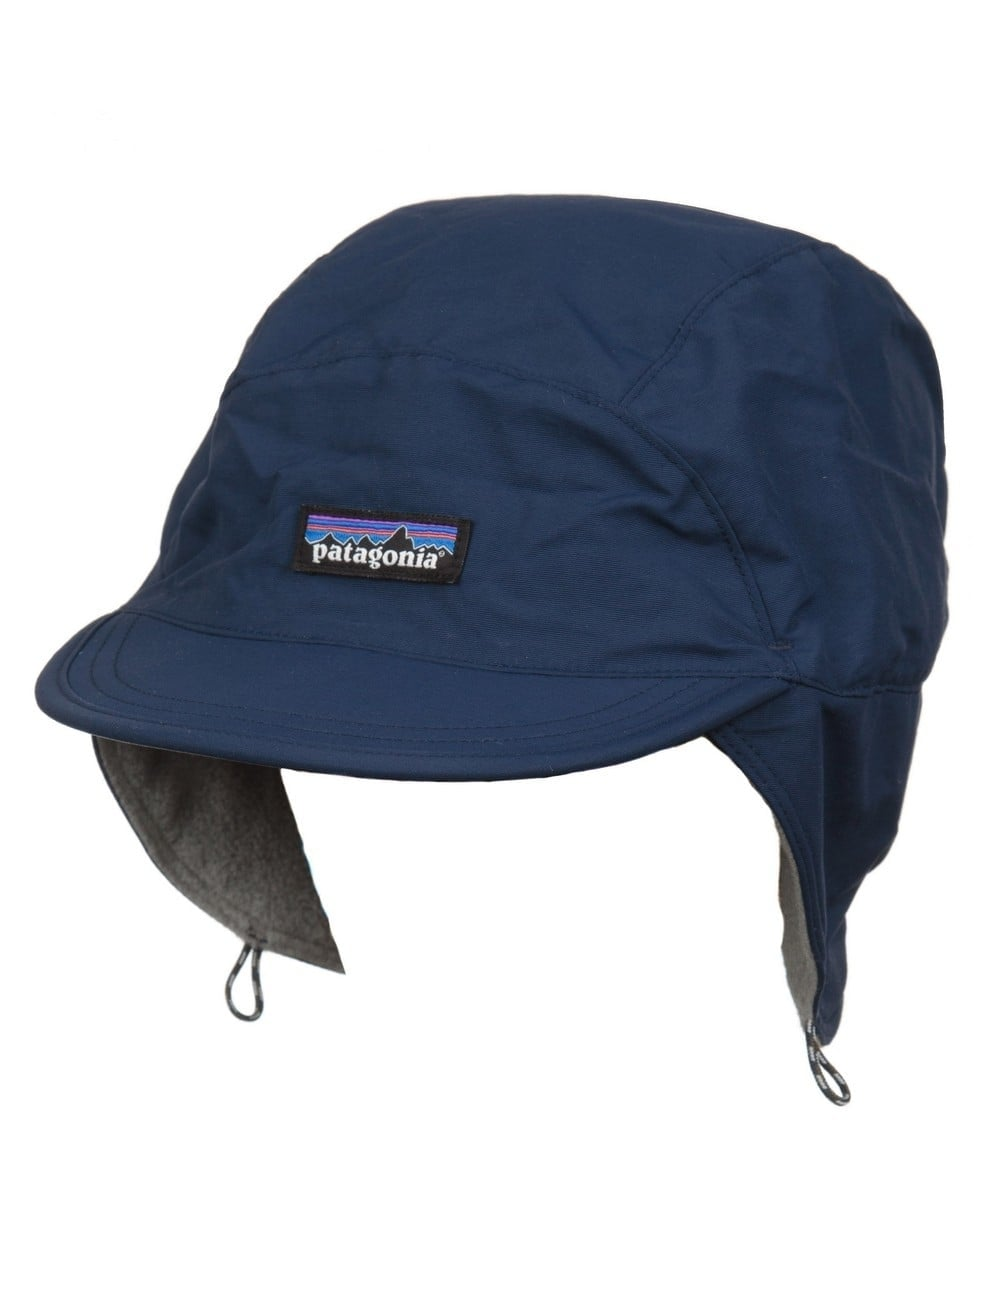 Patagonia Shelled Synchilla Duckbill Cap - Navy Feather Grey ... 645f5dce896